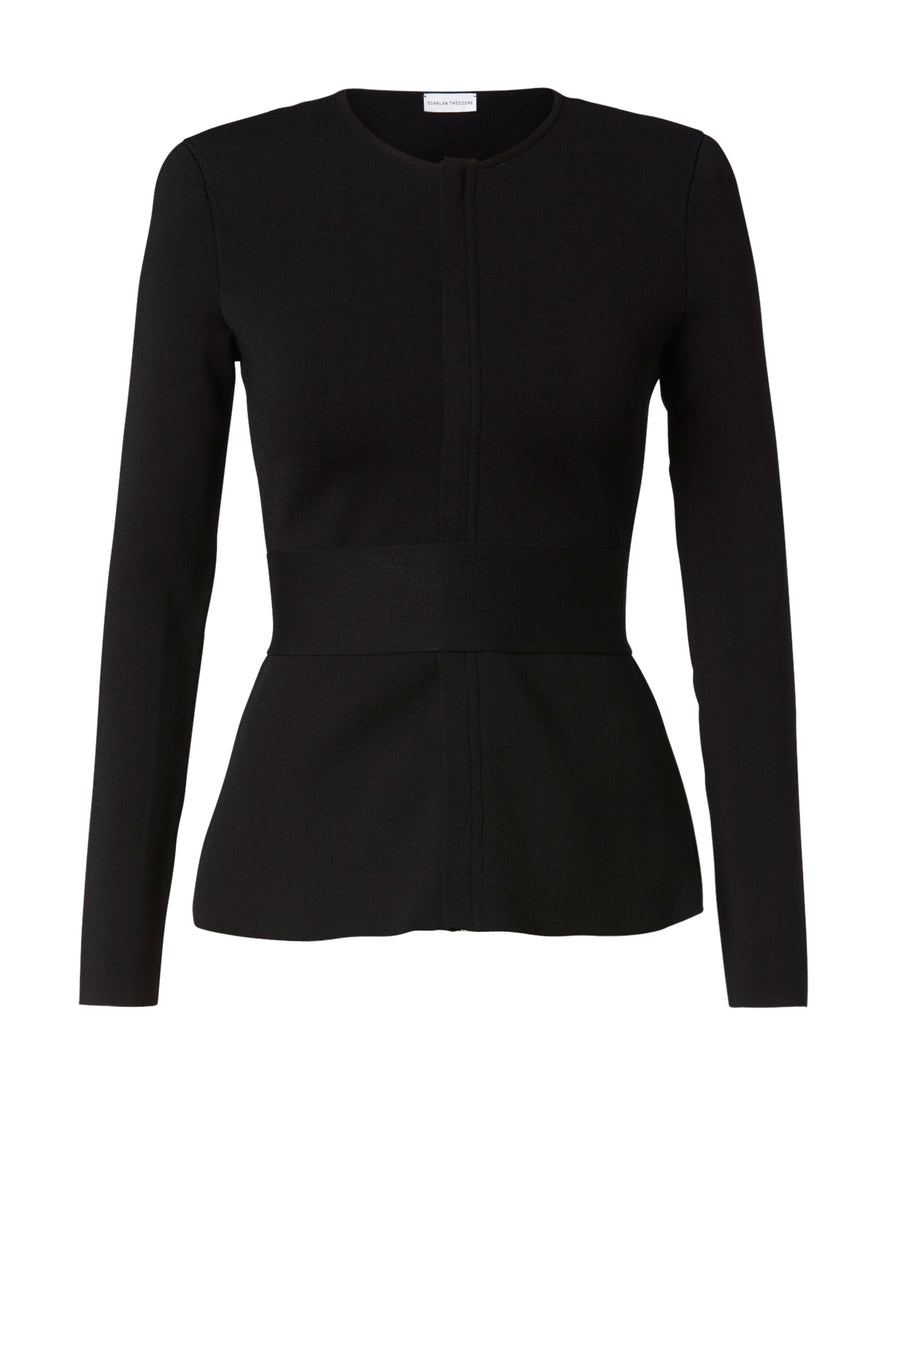 CREPE KNIT CURVED HEM JACKET LONG SLEEVES BLACK